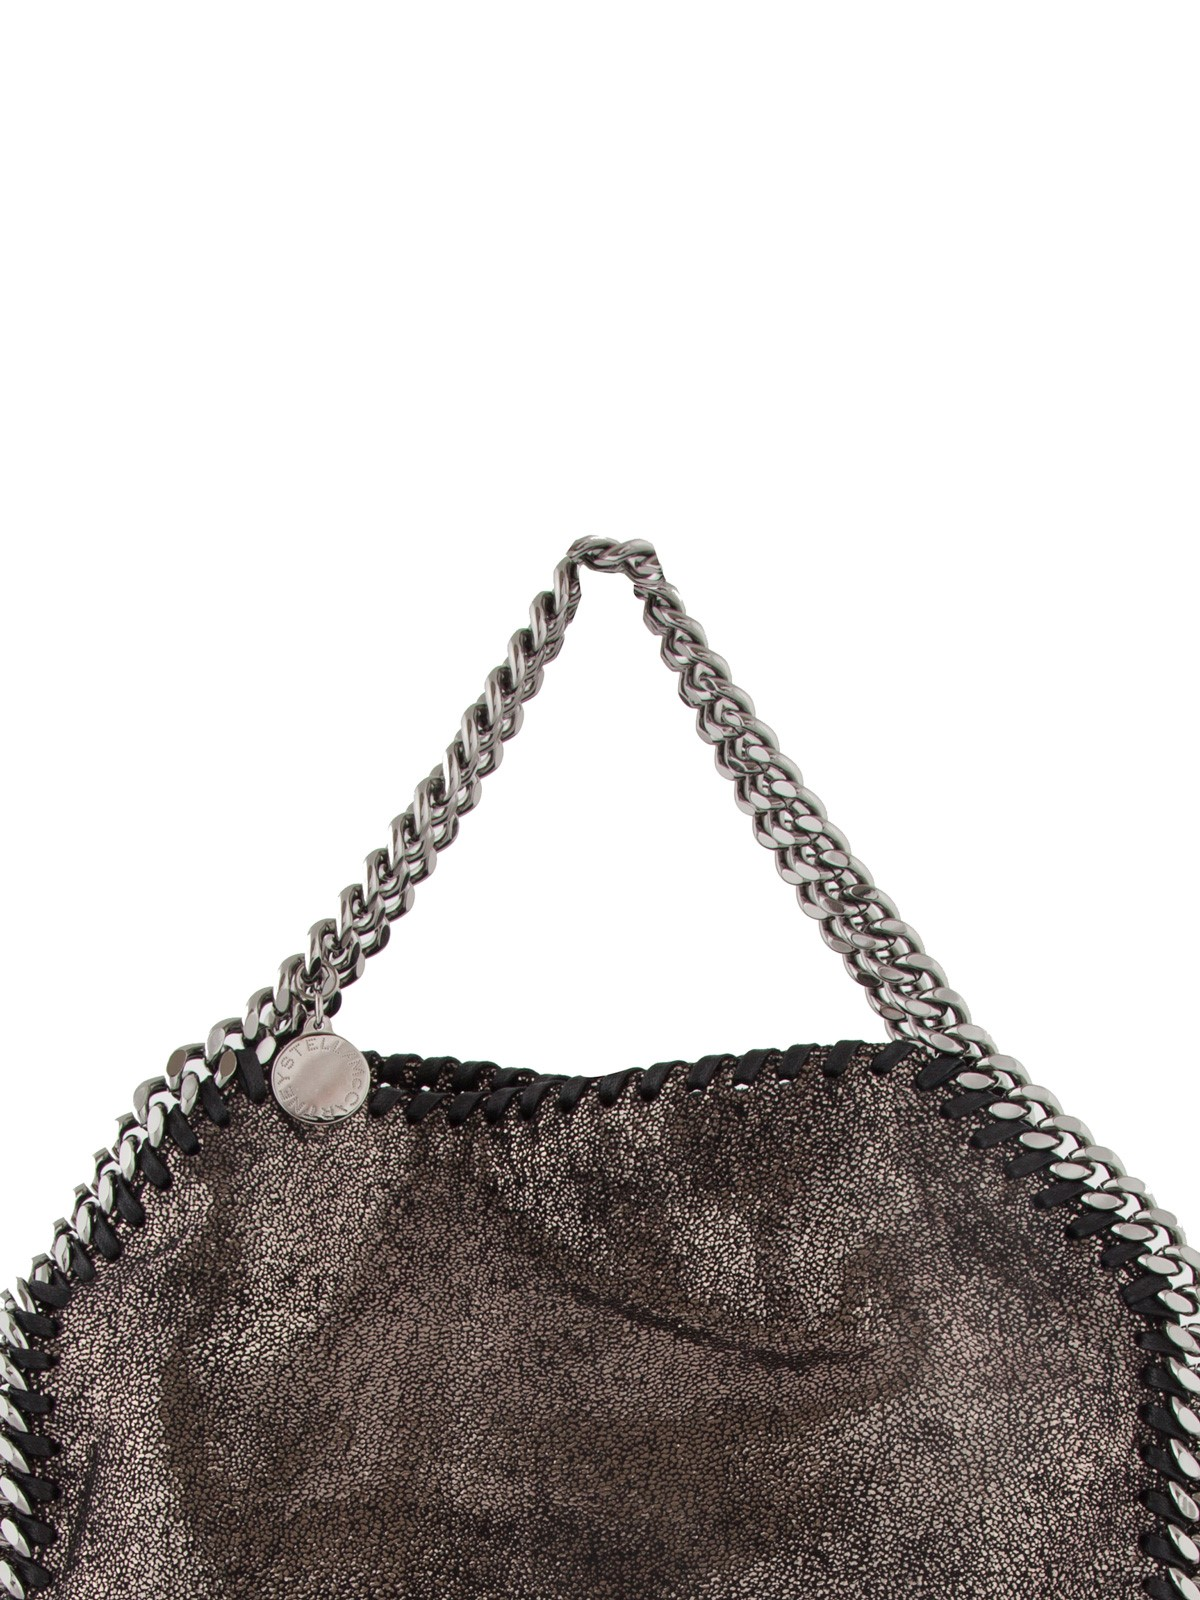 844d3879cf74 stella mccartney SMALL FALABELLA TOTE BAG available on montiboutique ...